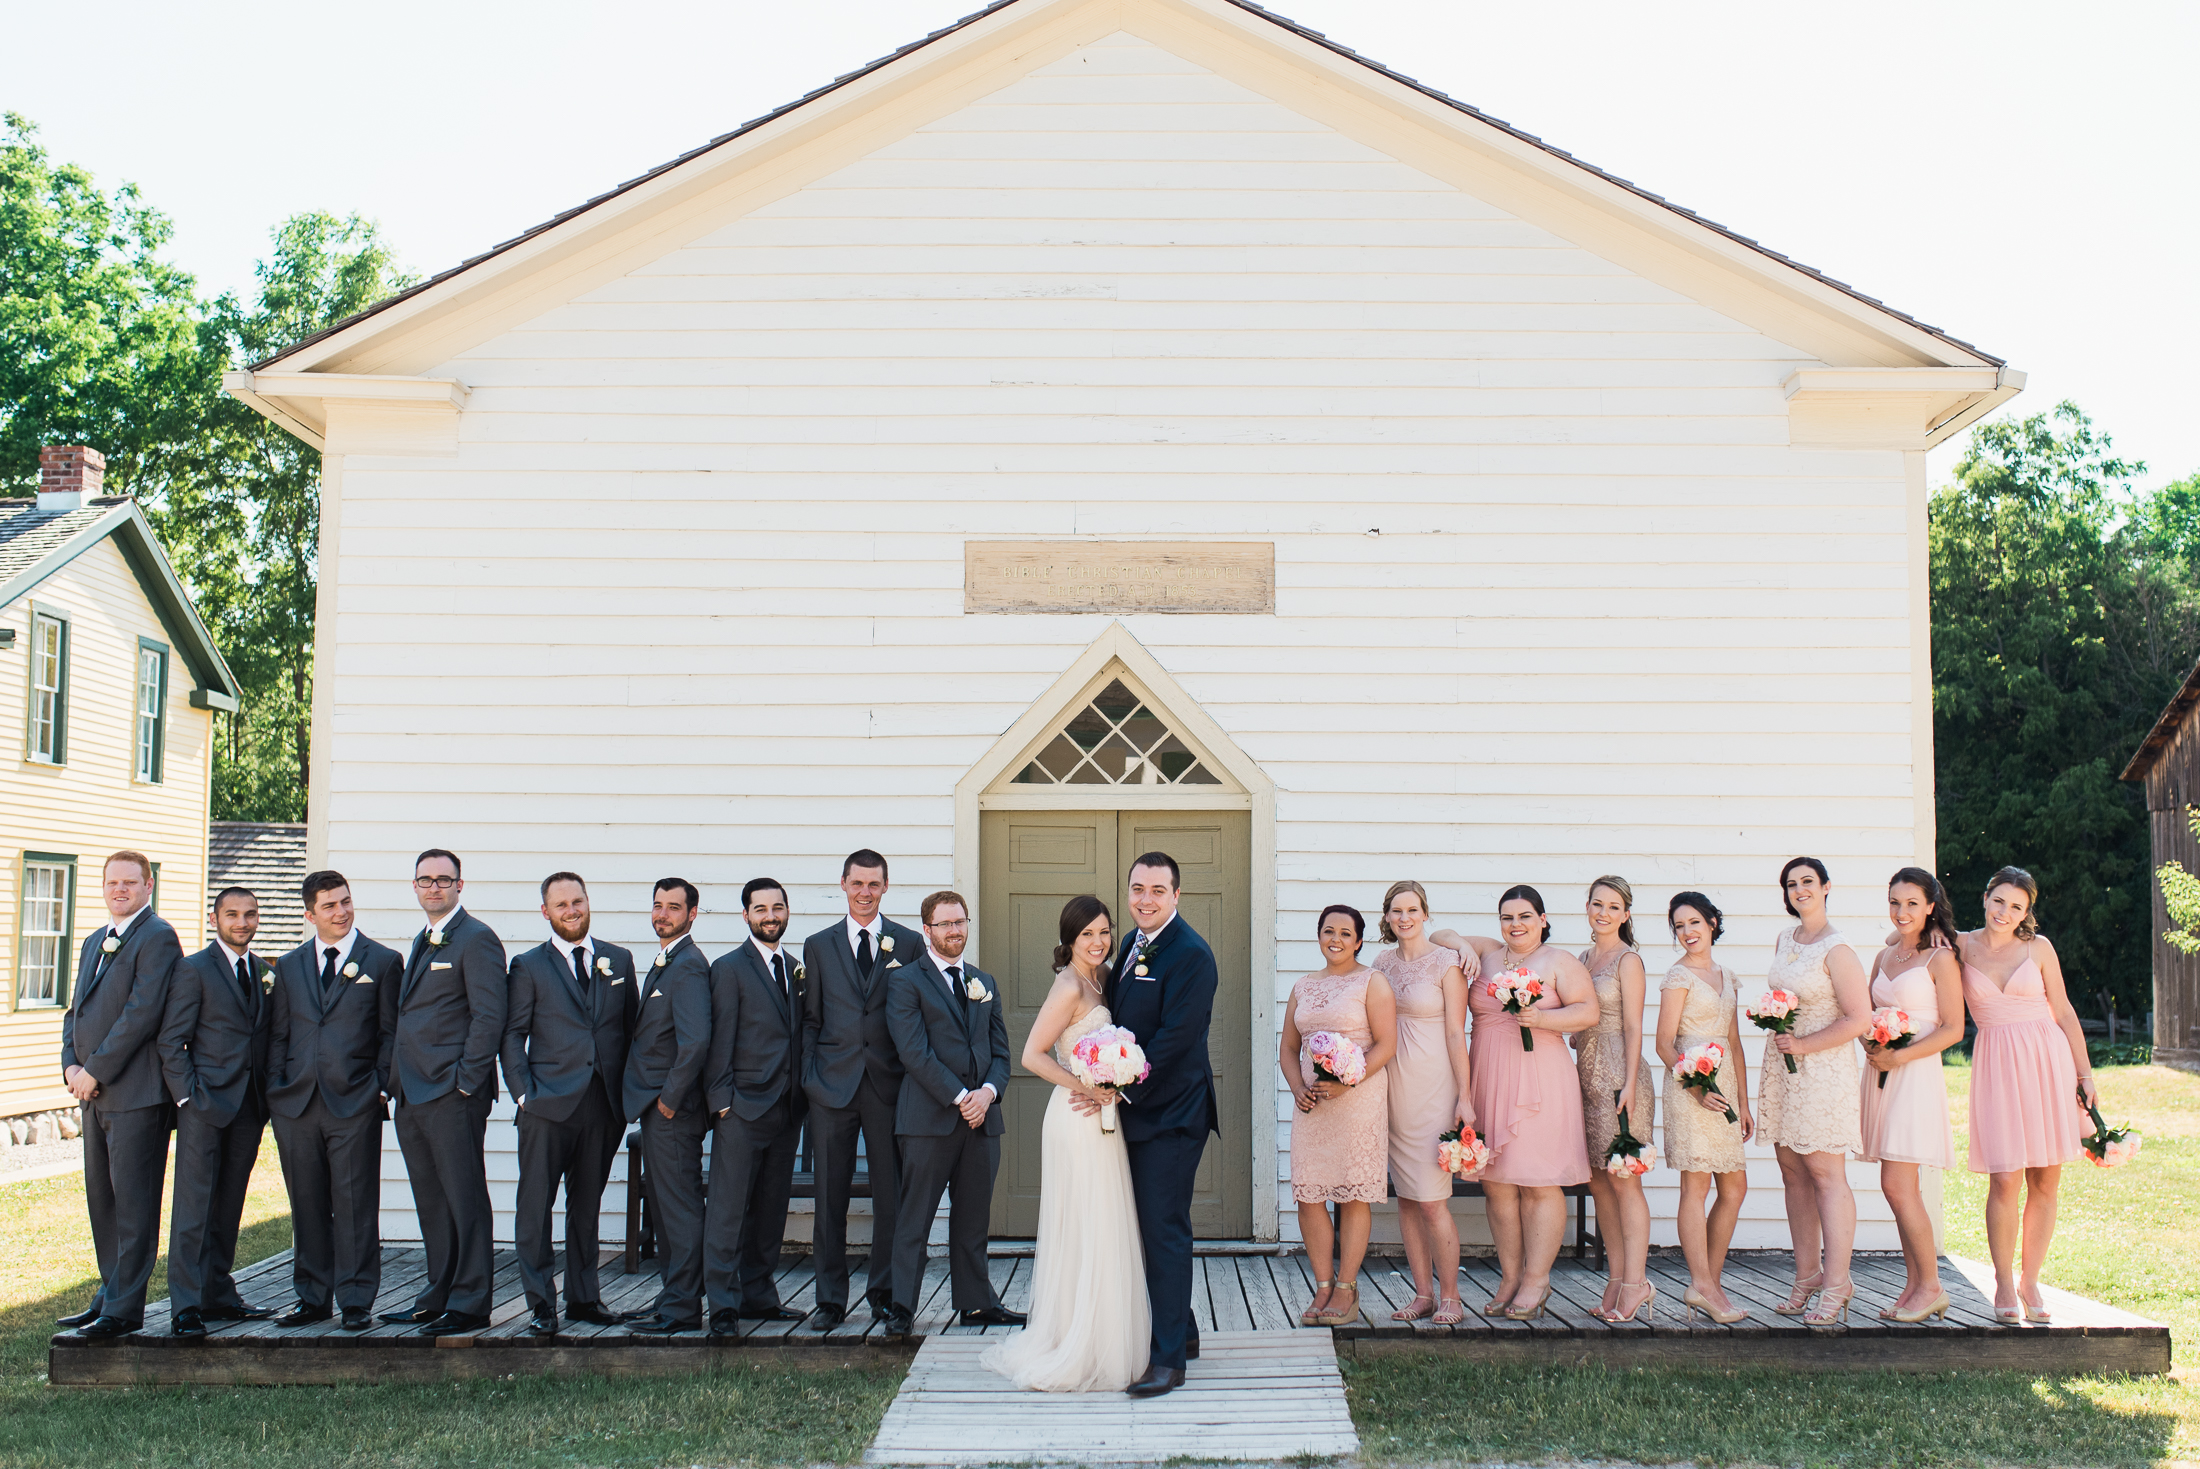 pickering_lakehouse_wedding_durham_region145